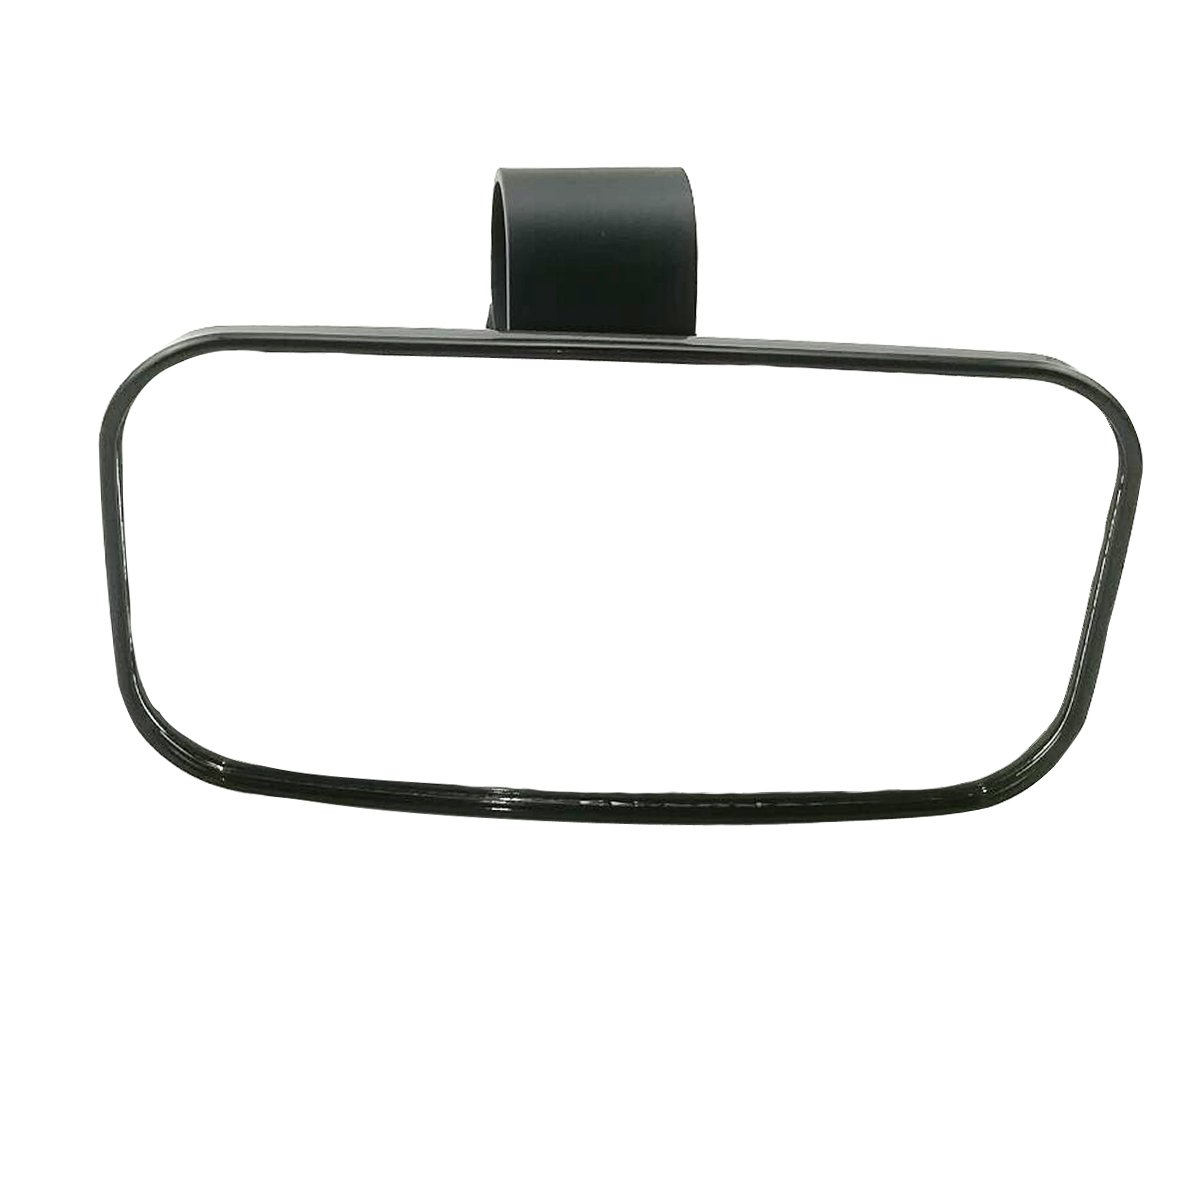 OKSTNO UTV Rear View Mirror for 1.5'' - 2'' Roll Cage with Shatter-Proof Tempered Glass Fits to Polaris Ranger,RZR Can Am Commander,Maverick Yamaha Viking,Rhino,Honda,Gator,Mirrors by OKSTNO (Image #1)